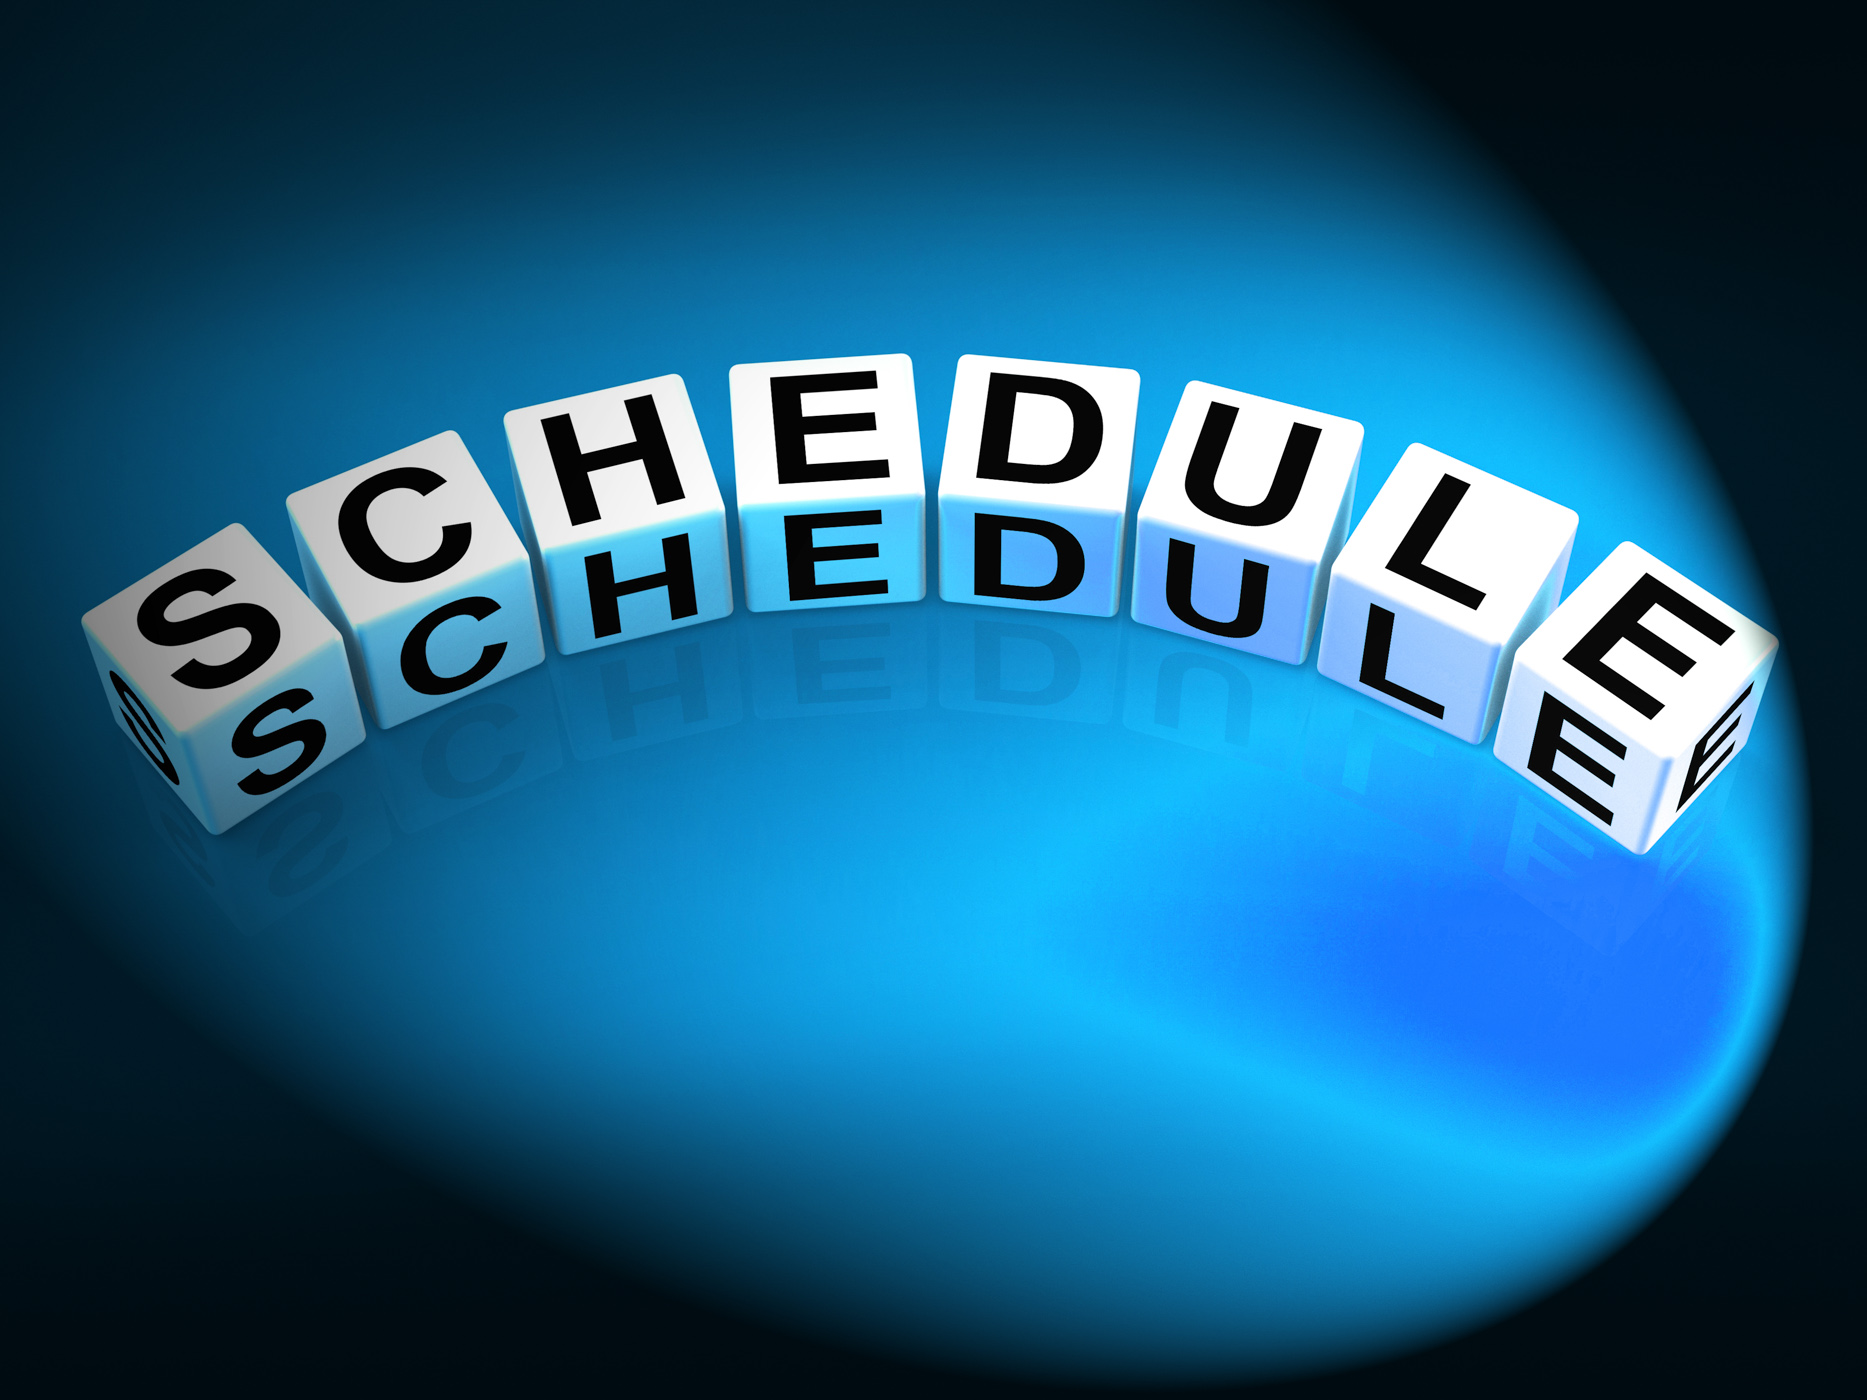 Schedule dice mean program itinerary and organize agenda photo